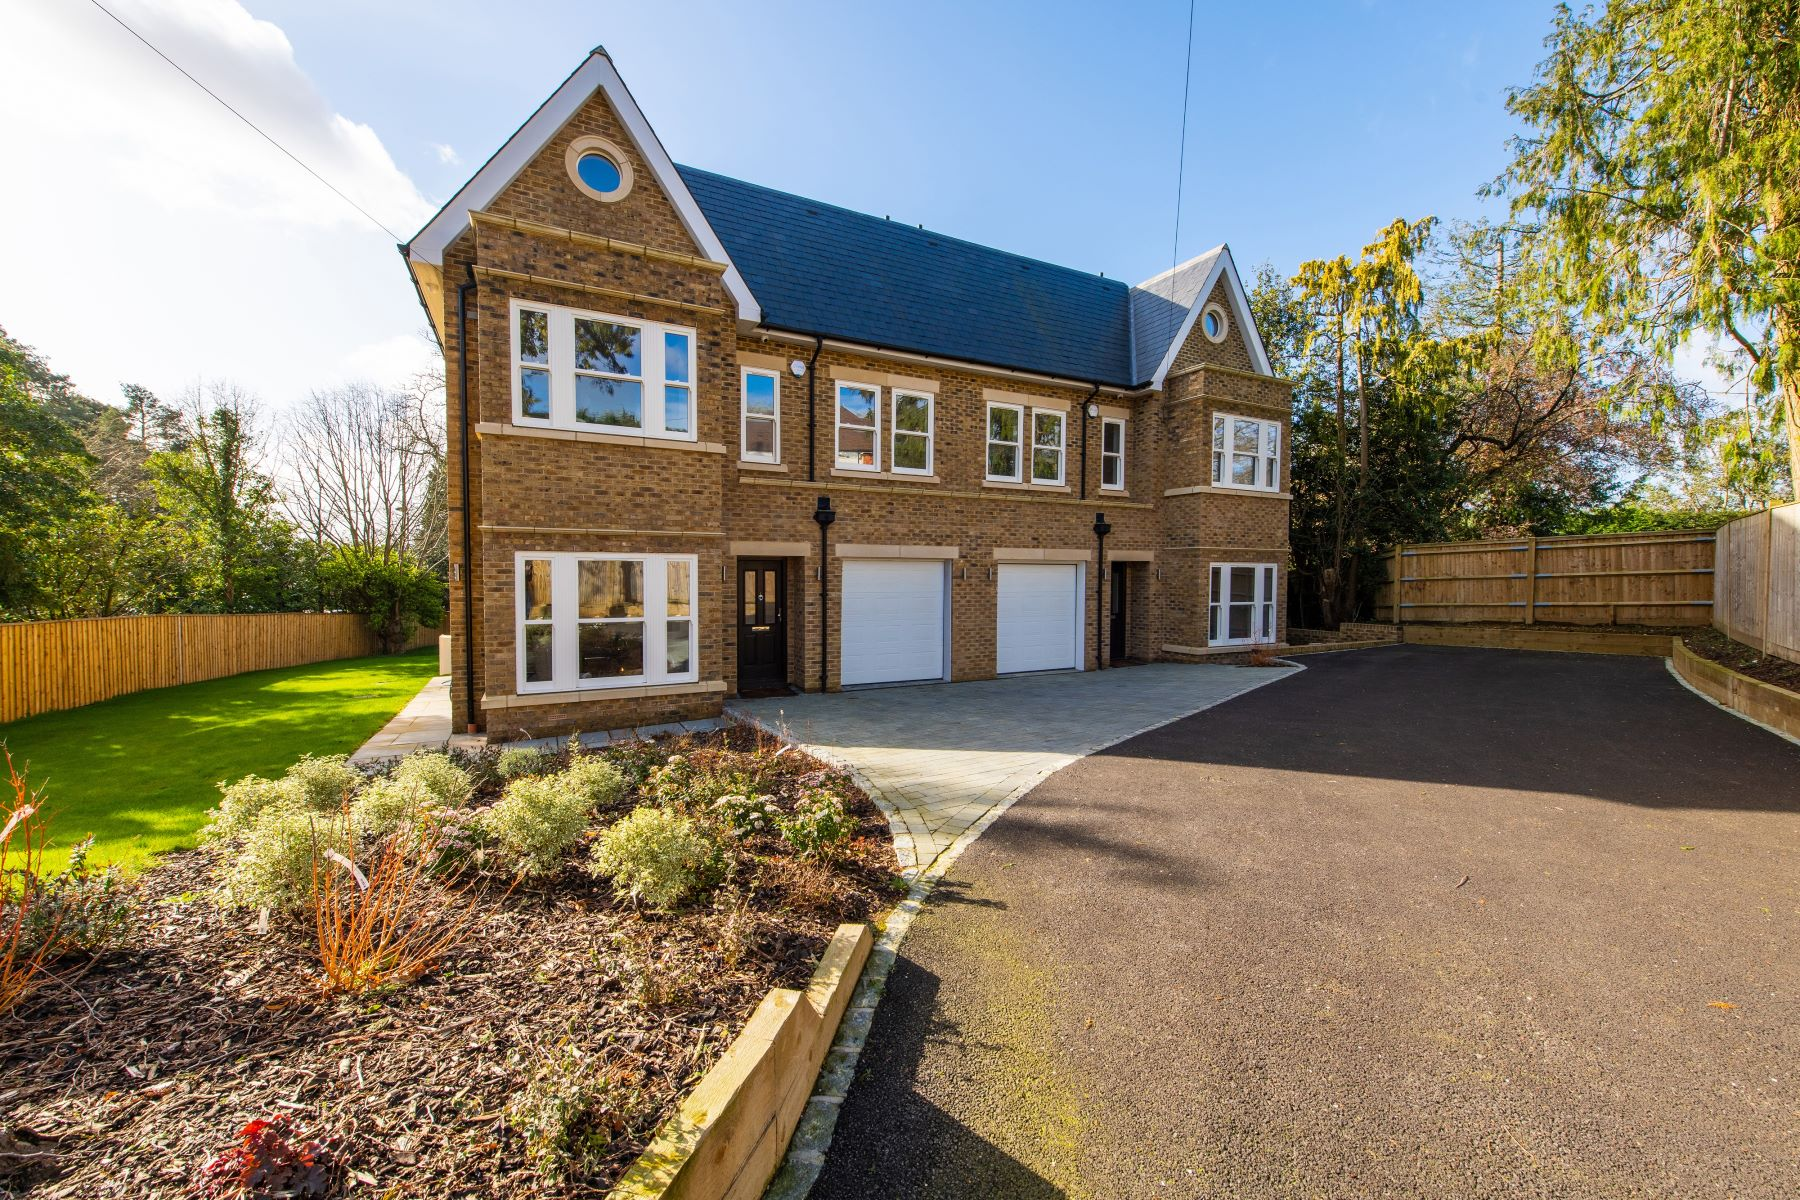 Single Family Homes for Sale at 1 Willow Croft, Leatherhead Road Oxshott, England KT22 0HG United Kingdom